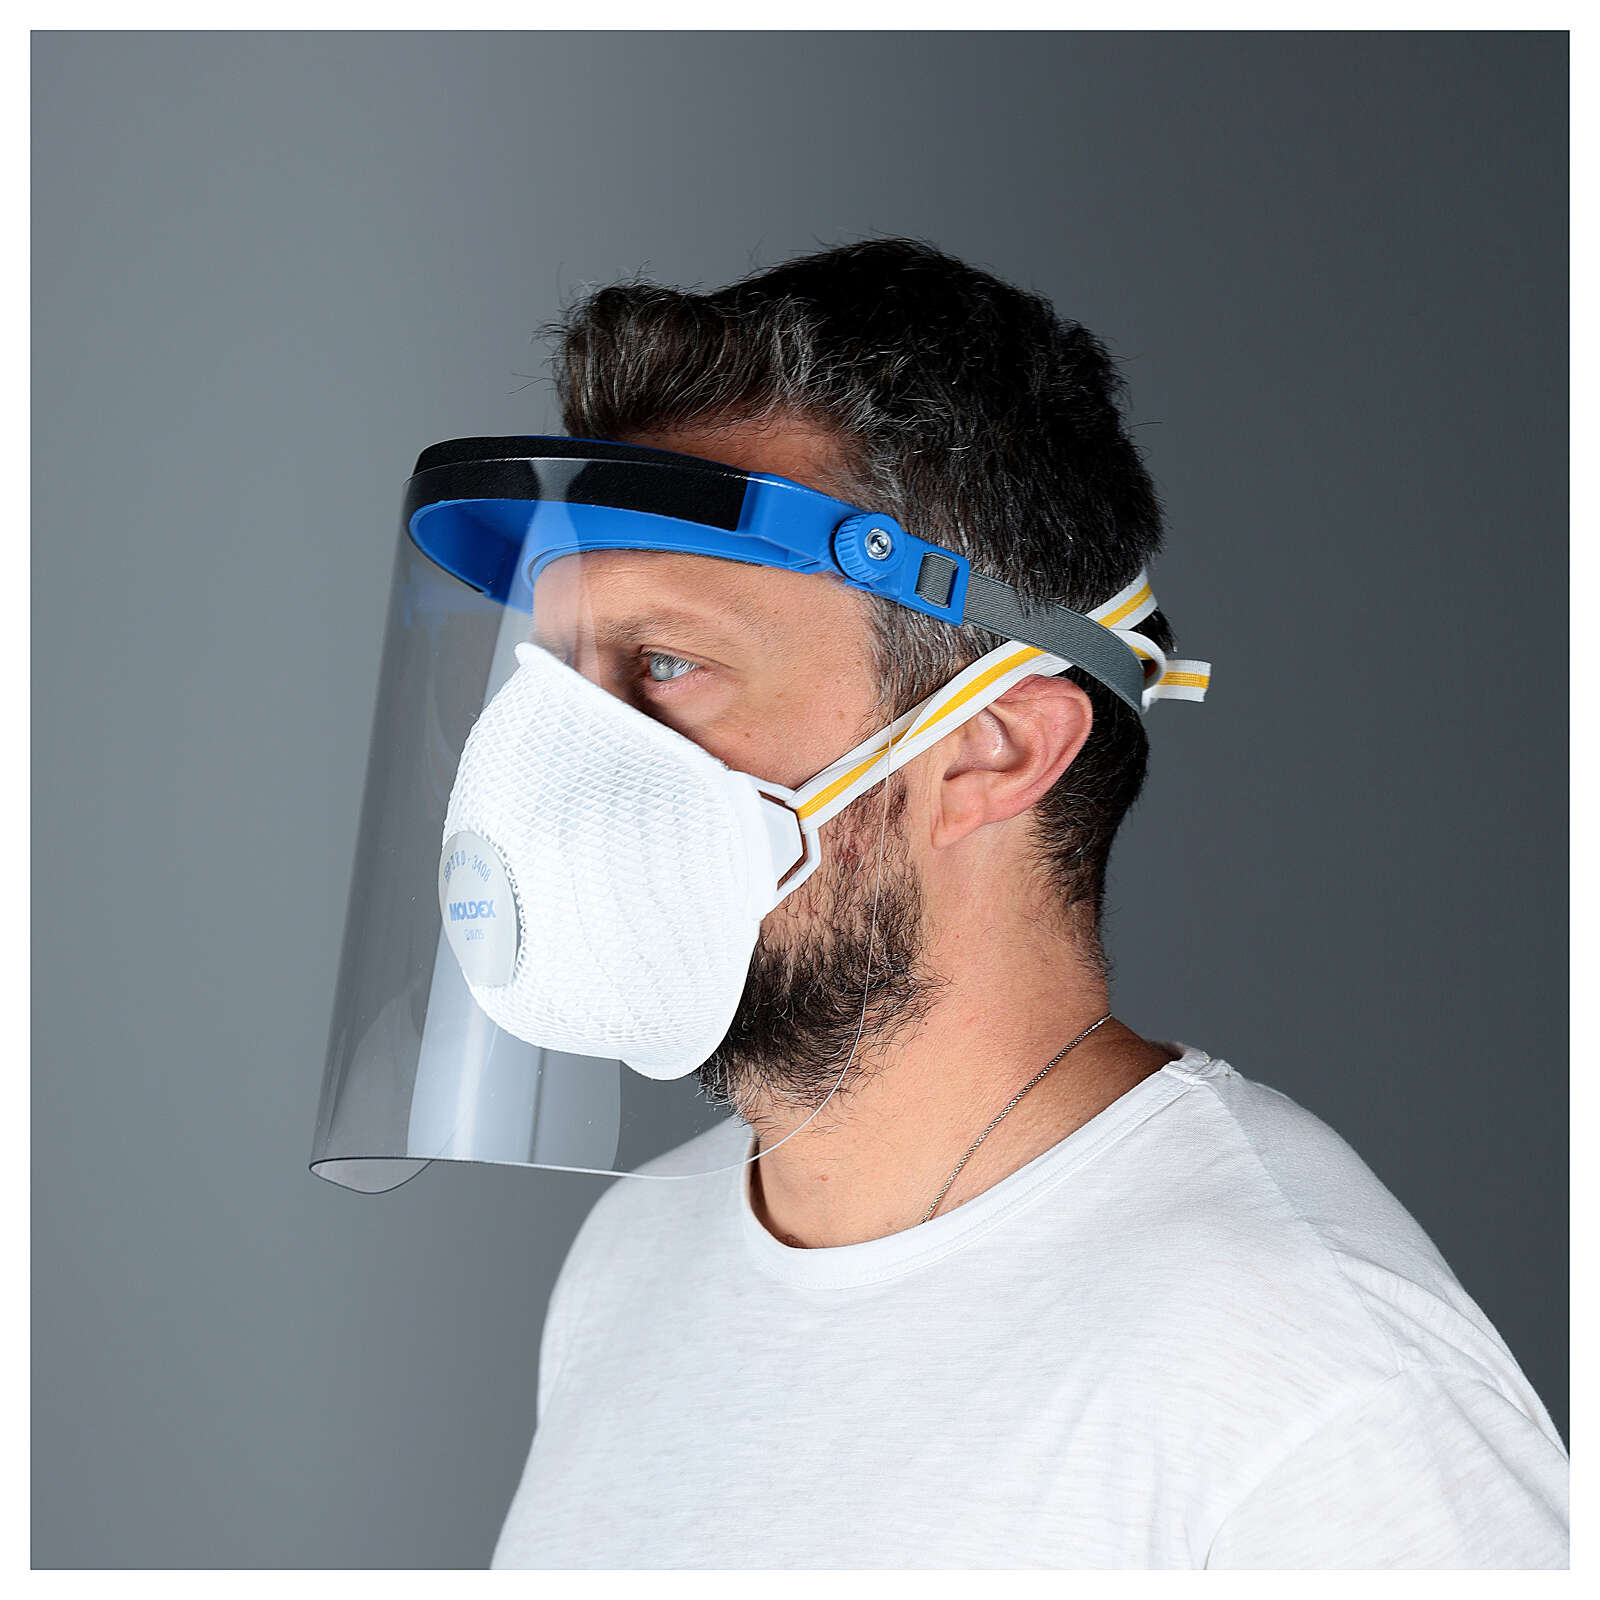 Adjustable face shield protect eyes and face against contagion 3